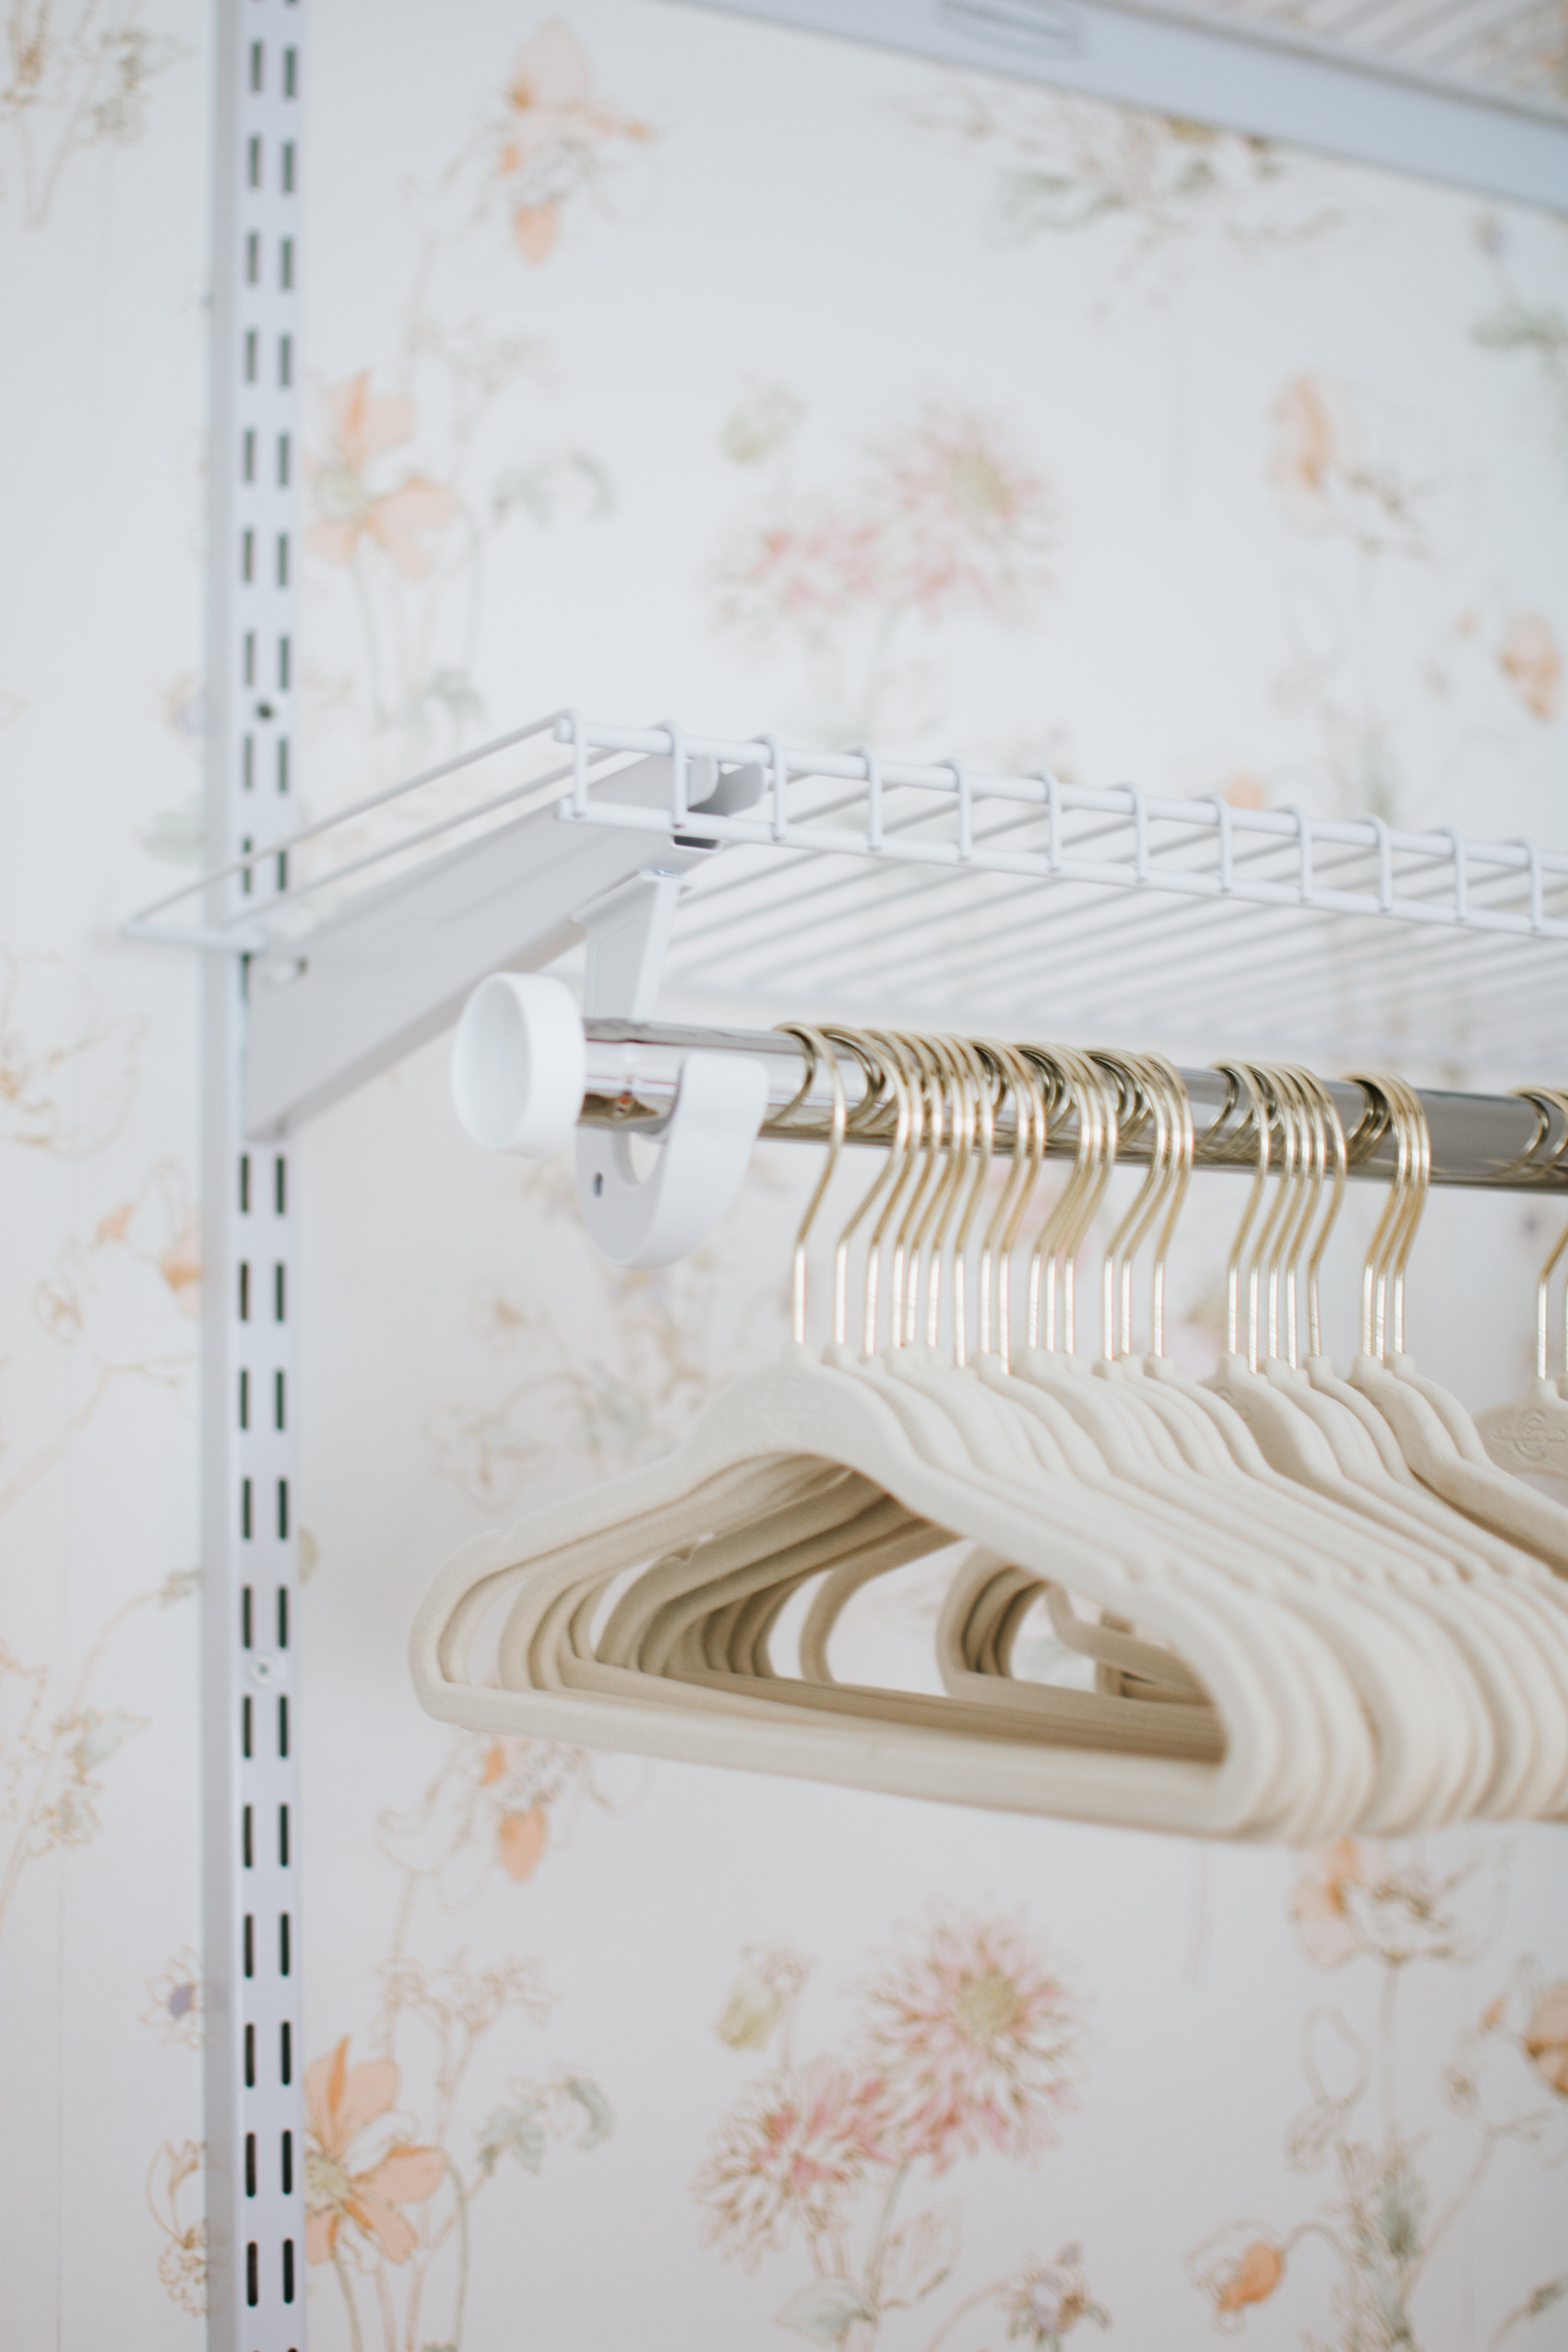 Nursery Closet Reveal with Rubbermaid via. The Pacific Standard | www.thepacificstandard.com #nurserytour #nurseryidea #nurserywallpaper #rubbermaid